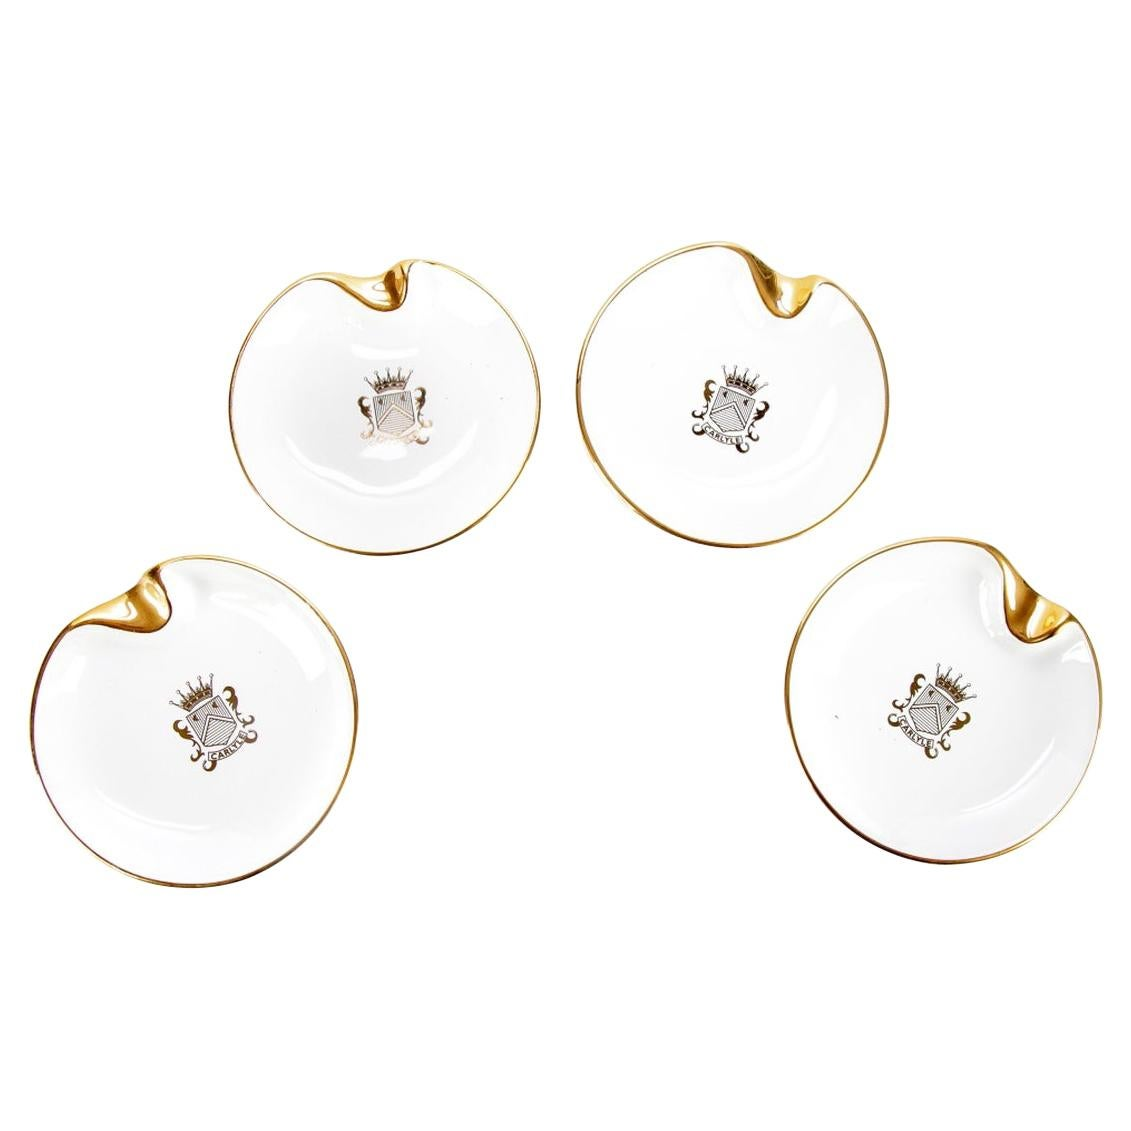 Set of Four Carlyle Hotel Ashtrays with 18K Gold Embossing